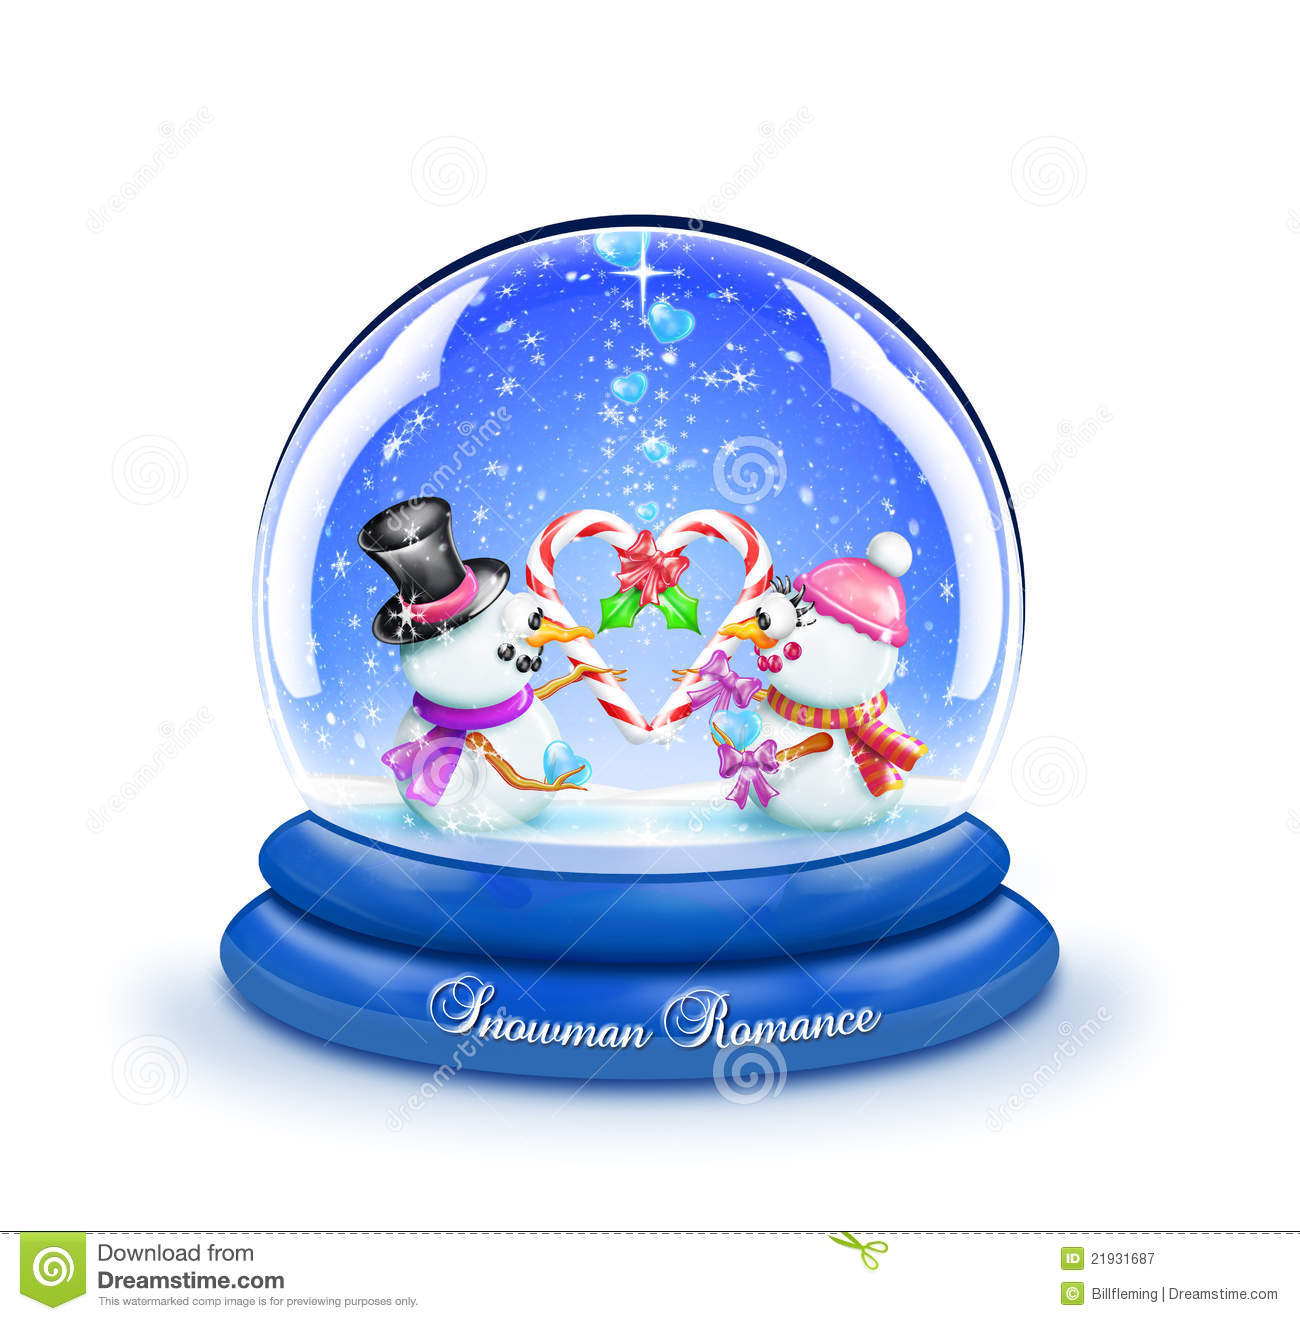 Snowman Candy Cane Romance Snow Globe Royalty Free Stock.